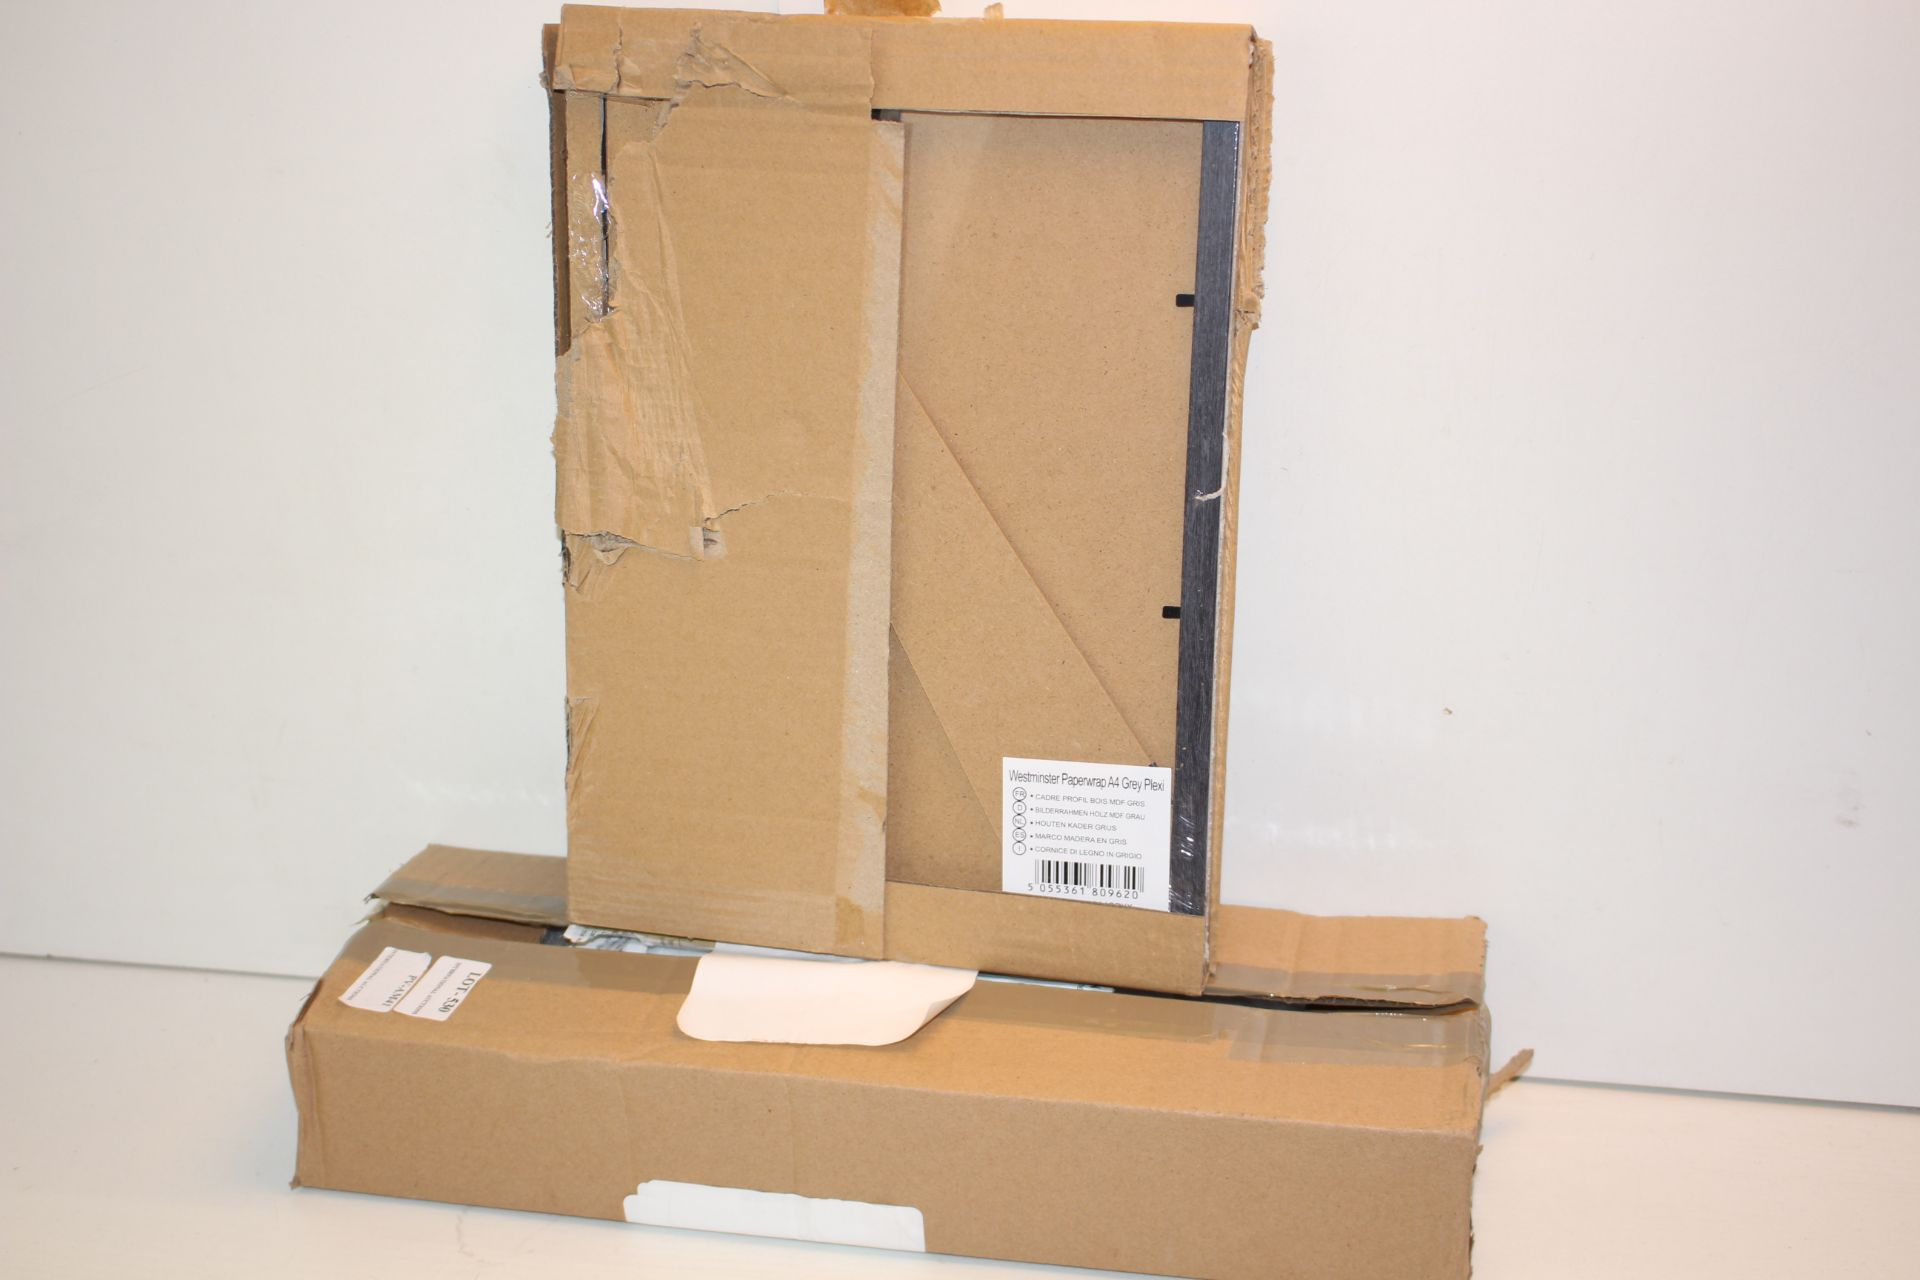 X2 BOXED ITEMS INCLUDING PICTURE FRAME AND SHELFS Condition ReportAppraisal Available on Request-